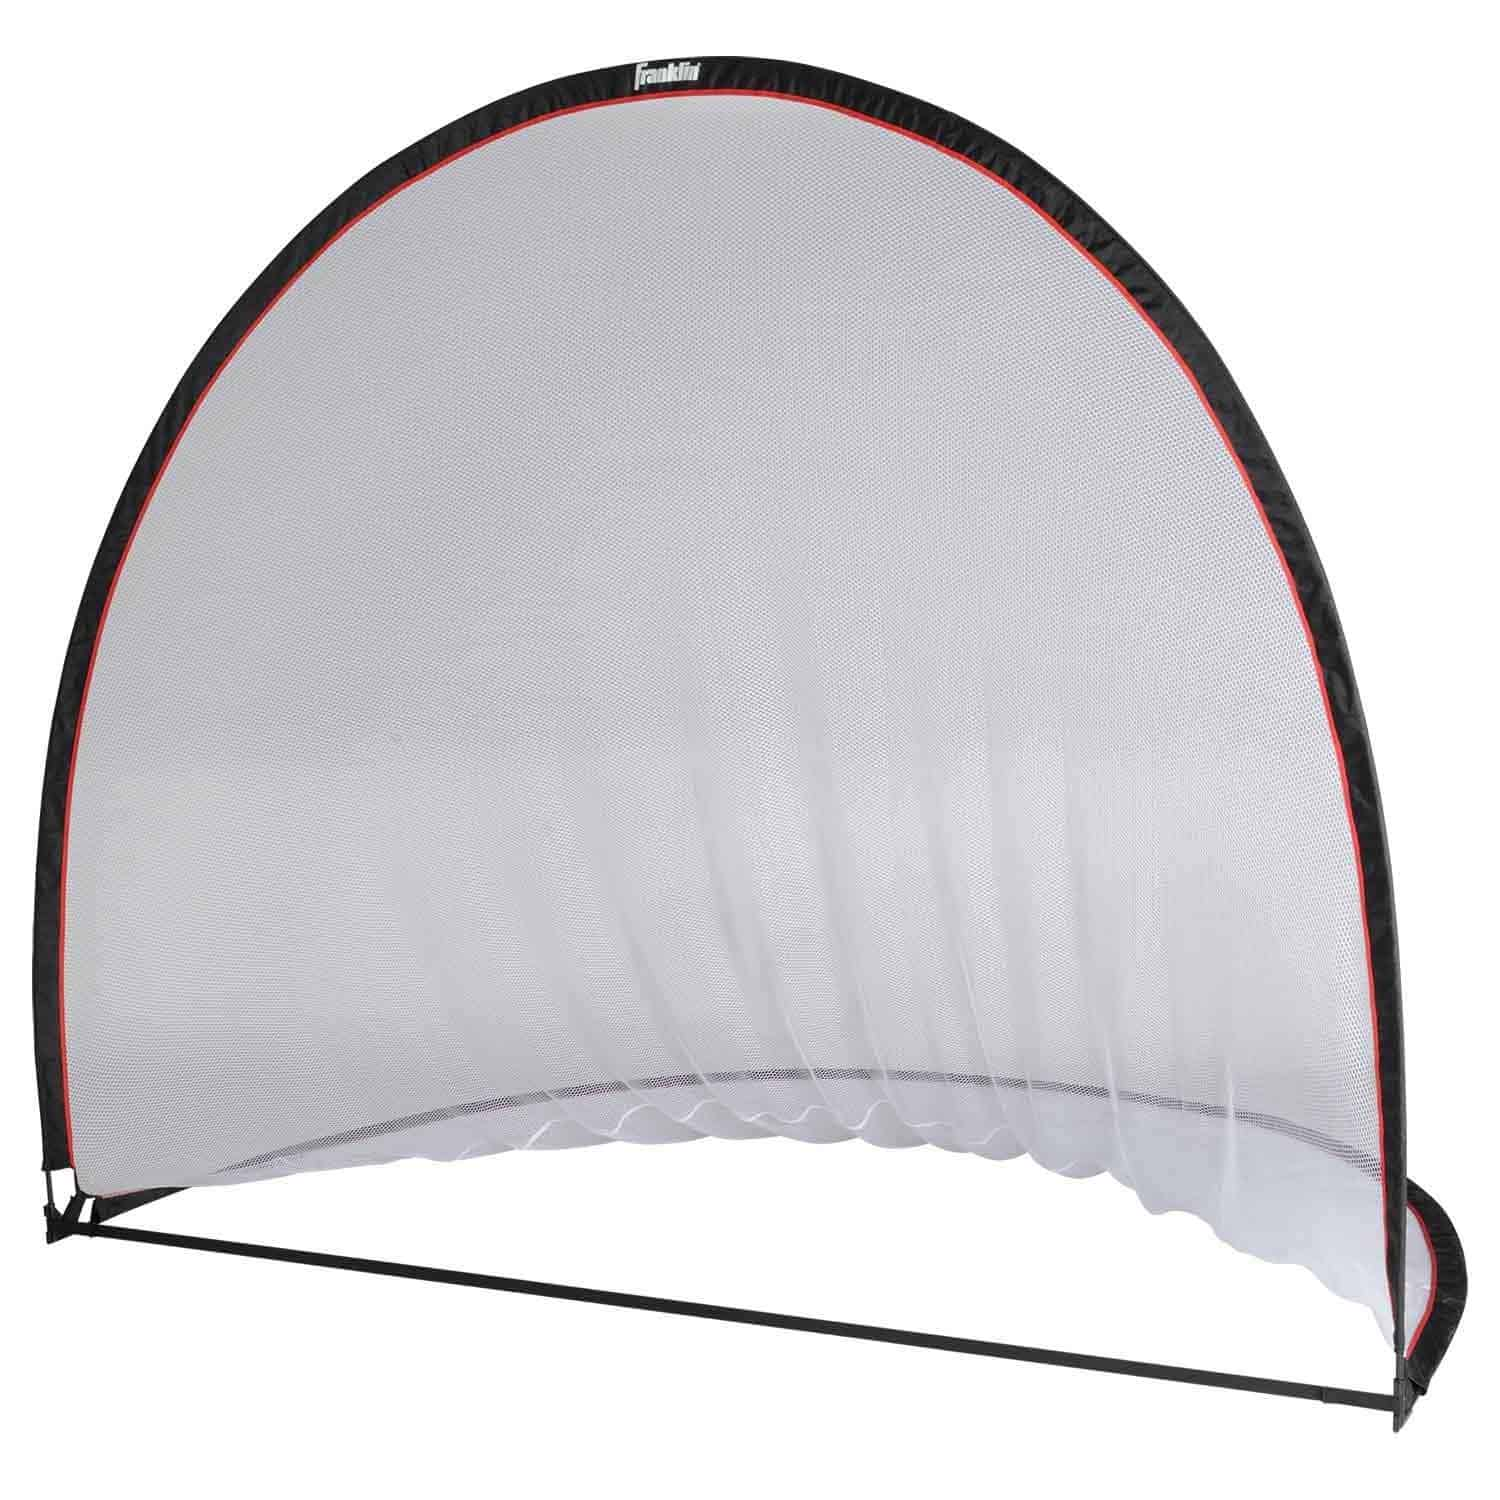 Franklin Sports All-Sports Practice Net